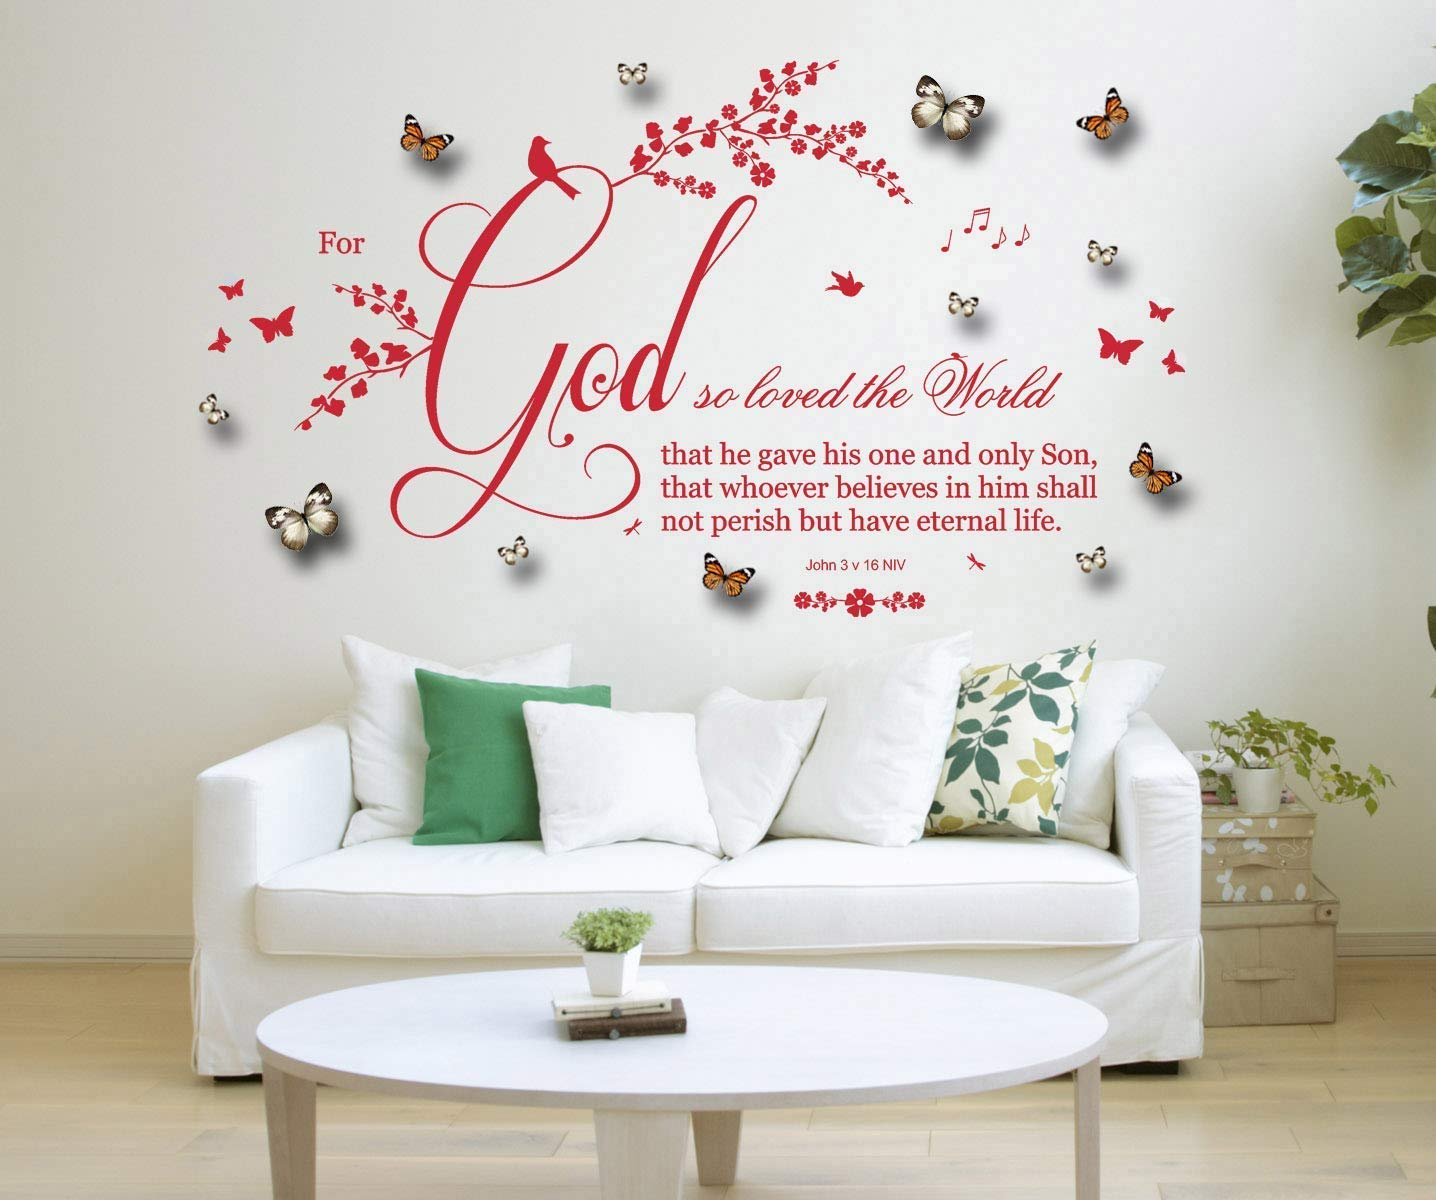 Vinyl Wall Art Large Stickers Bible Quote John 3;16 Mural Bedroom Decoration